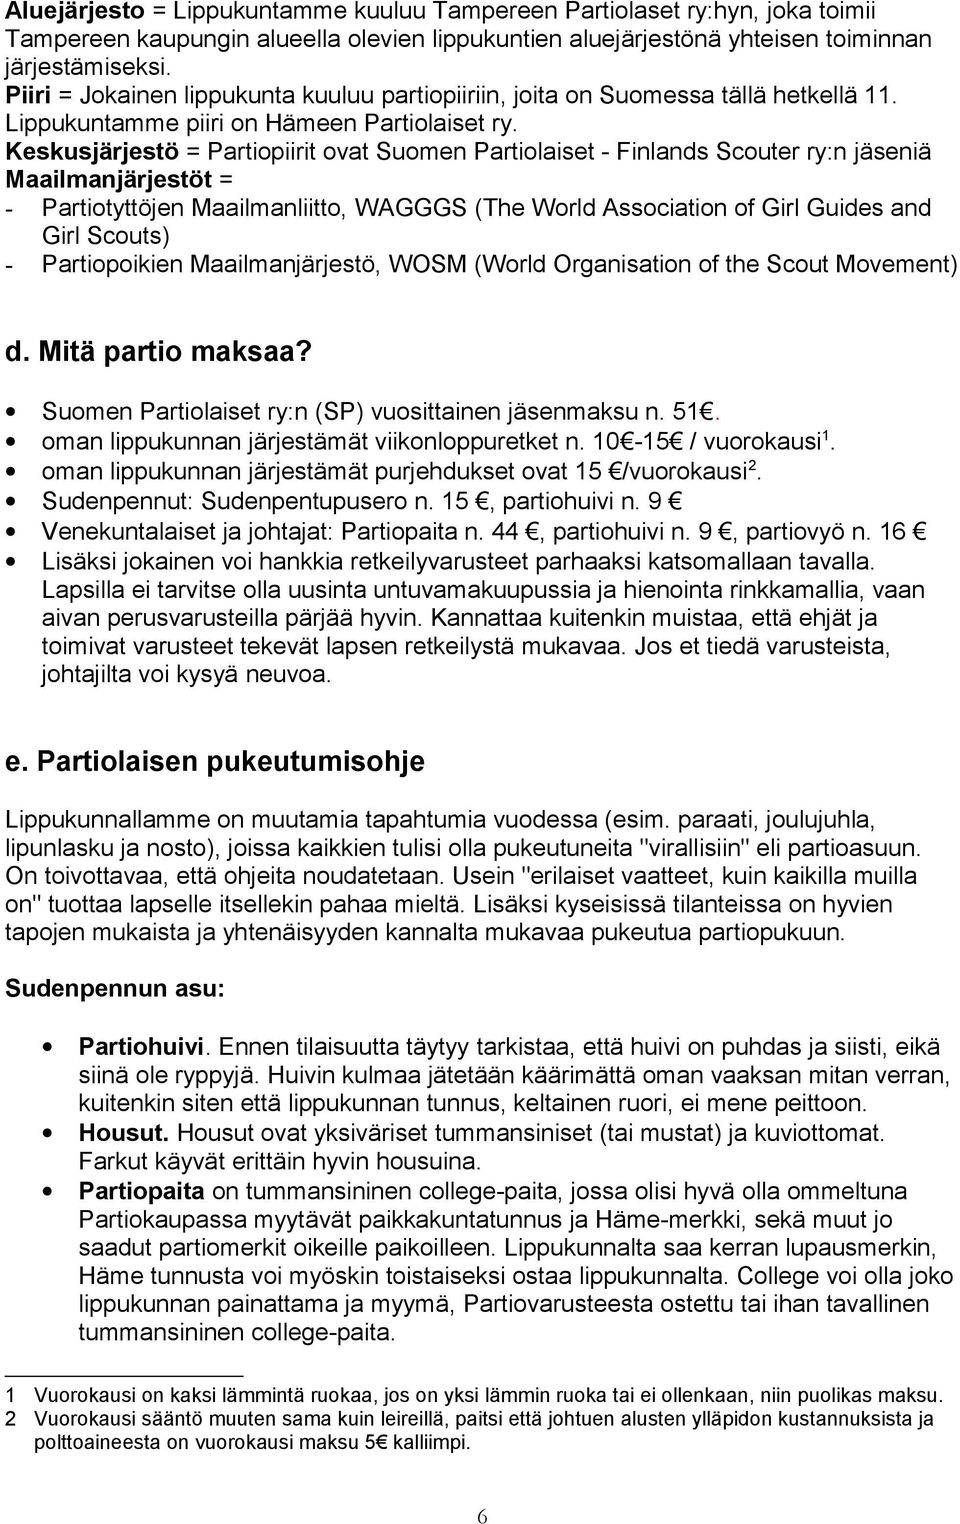 Keskusjärjestö = Partiopiirit ovat Suomen Partiolaiset - Finlands Scouter ry:n jäseniä Maailmanjärjestöt = - Partiotyttöjen Maailmanliitto, WAGGGS (The World Association of Girl Guides and Girl